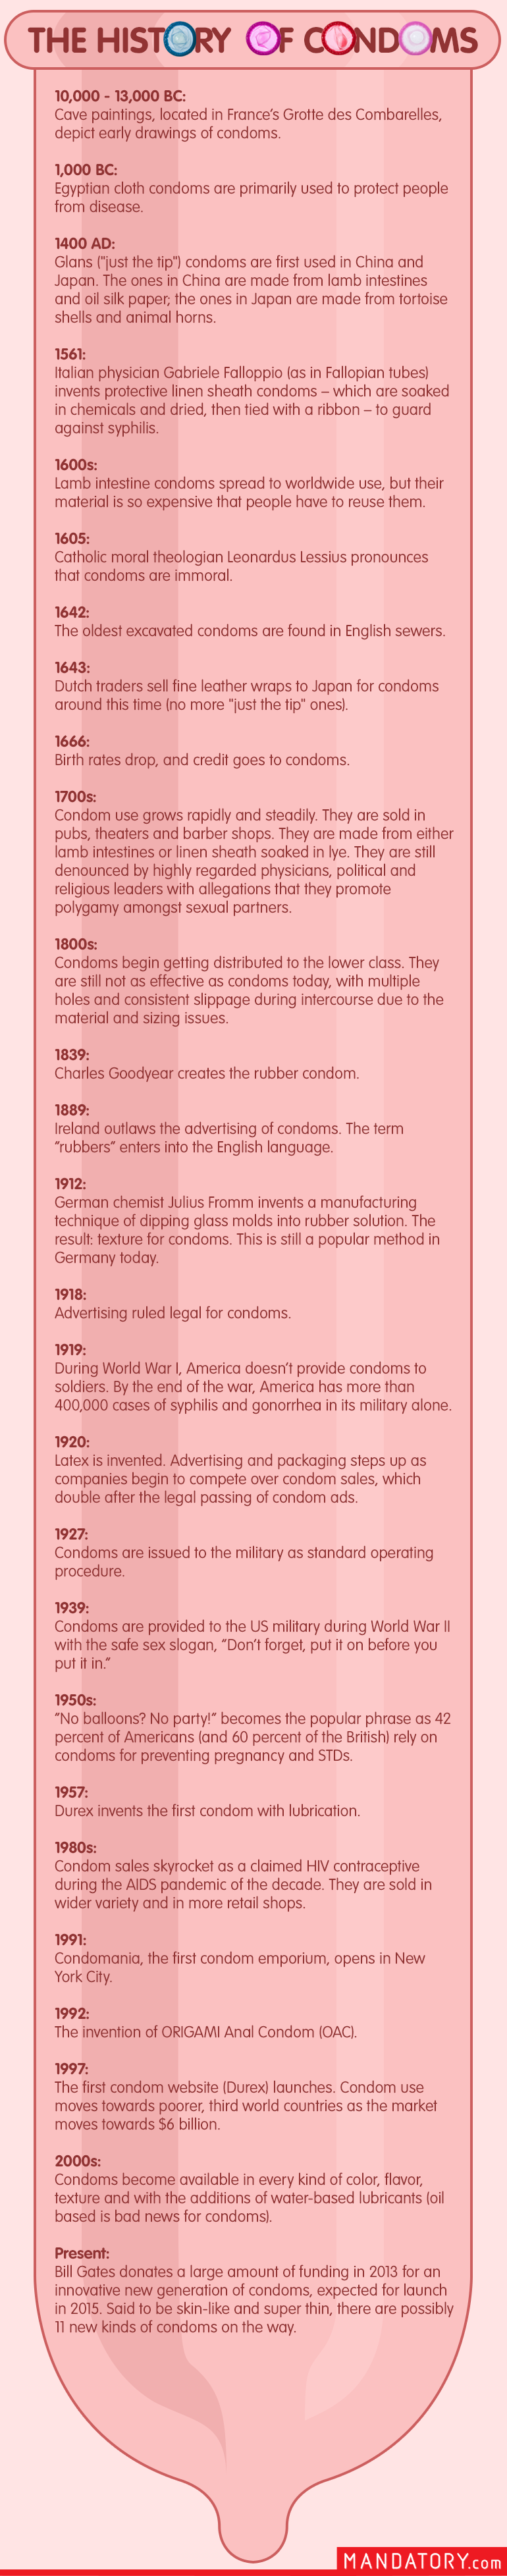 Condom timeline detailed history wrapping it